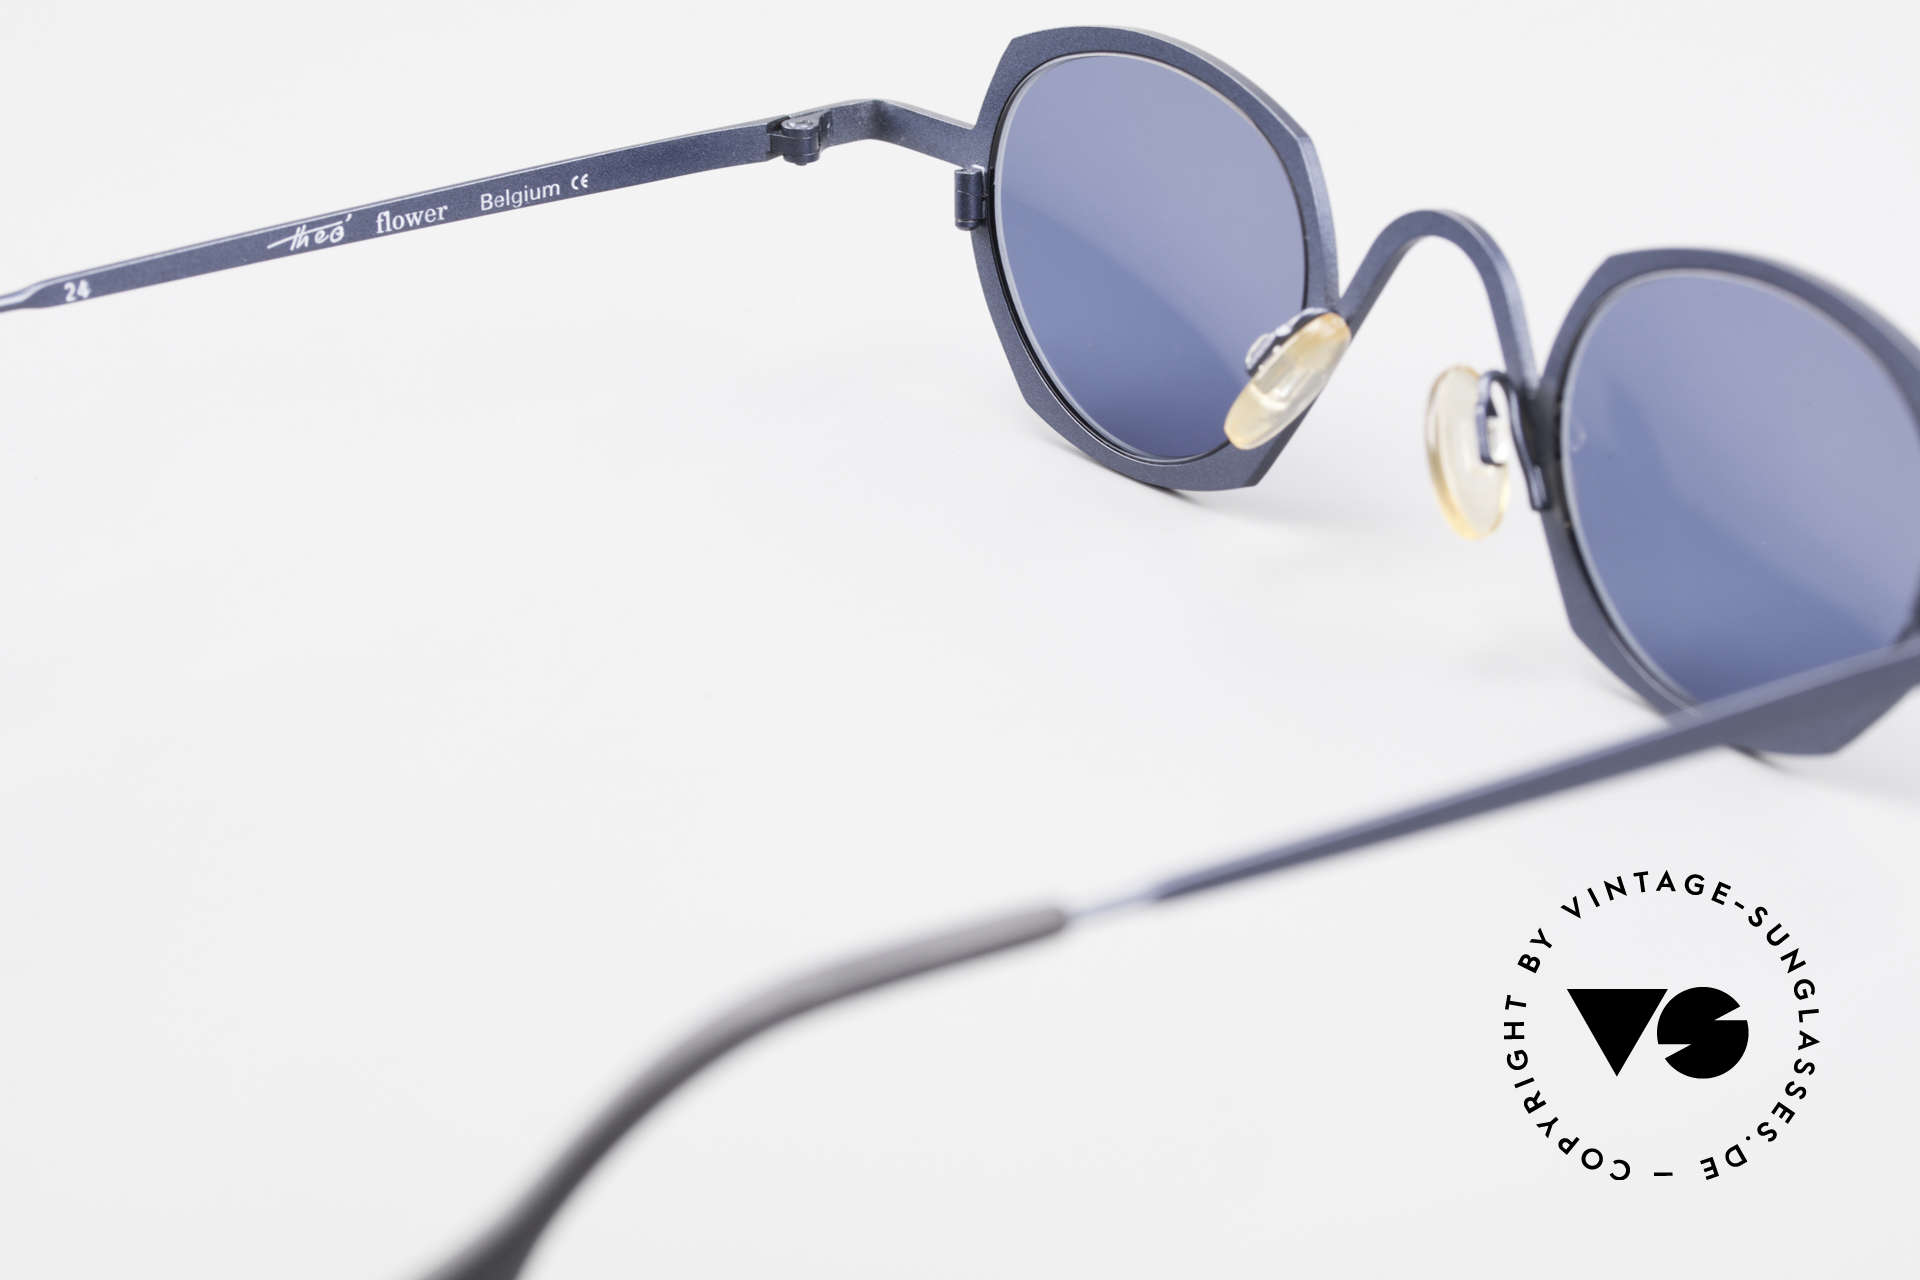 Theo Belgium Flower Round 90s Designer Sunglasses, blue tinted sun lenses can be replaced with prescriptions, Made for Men and Women